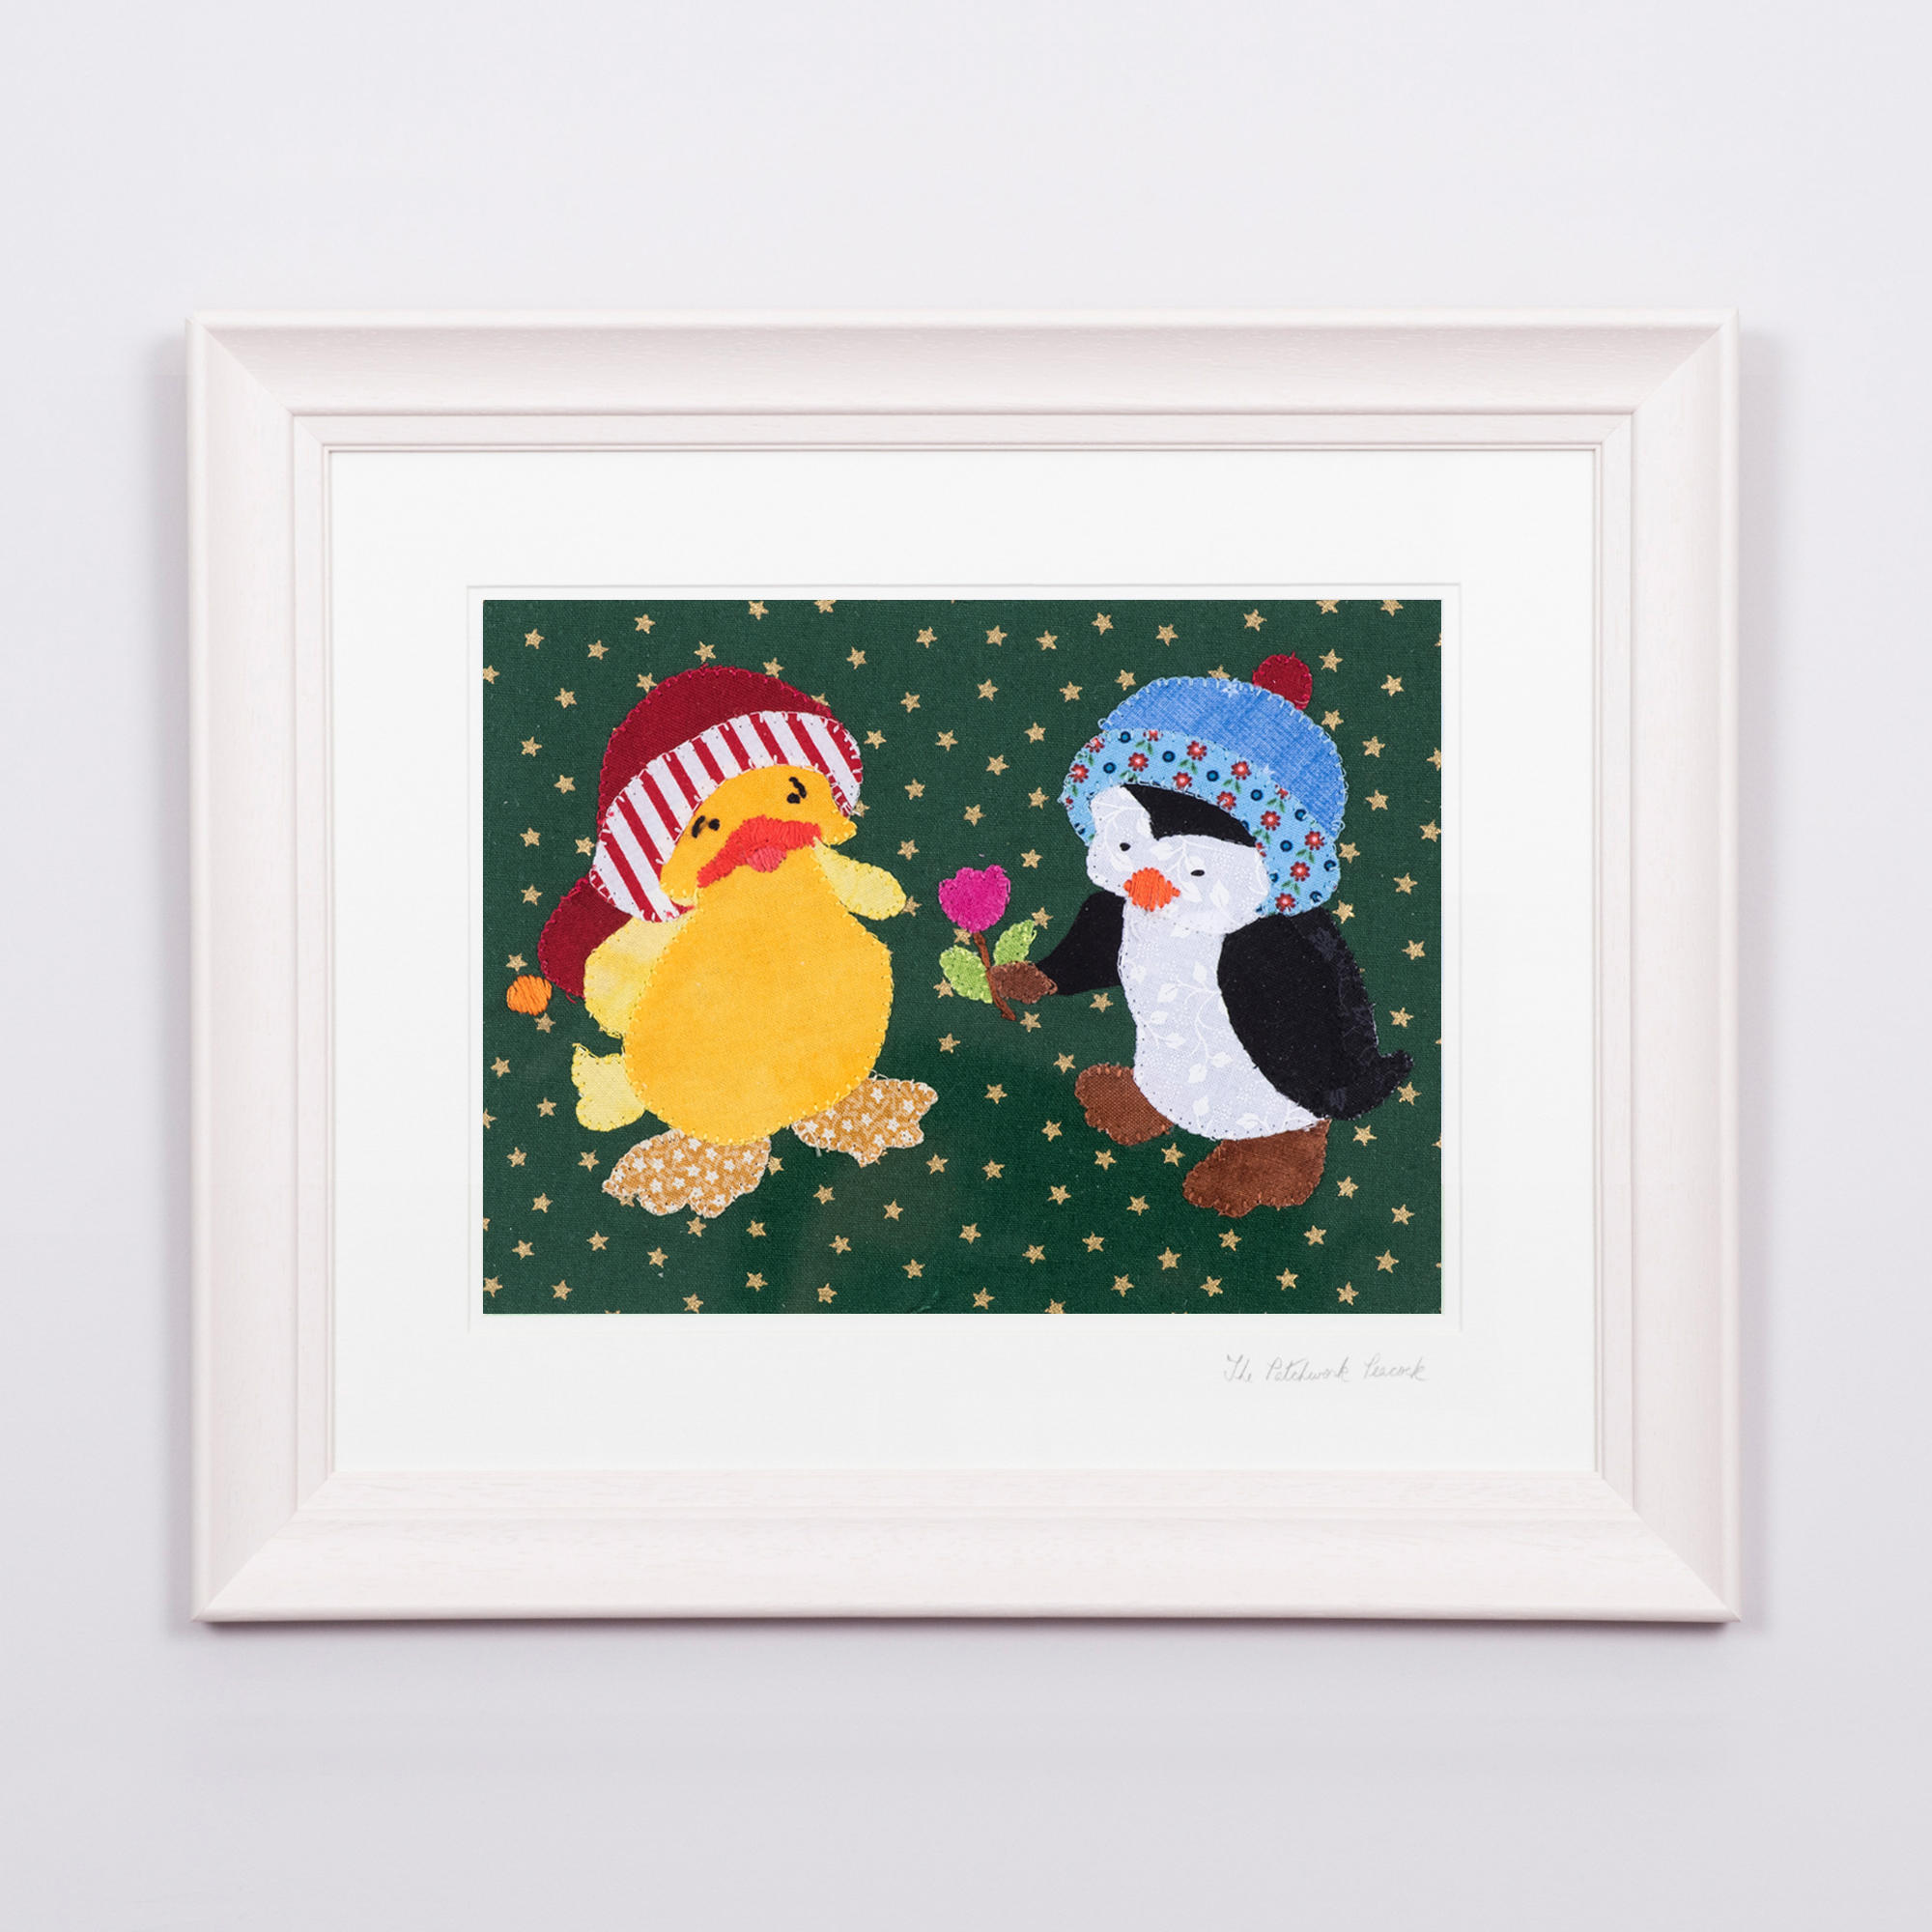 Christmas Critters €65